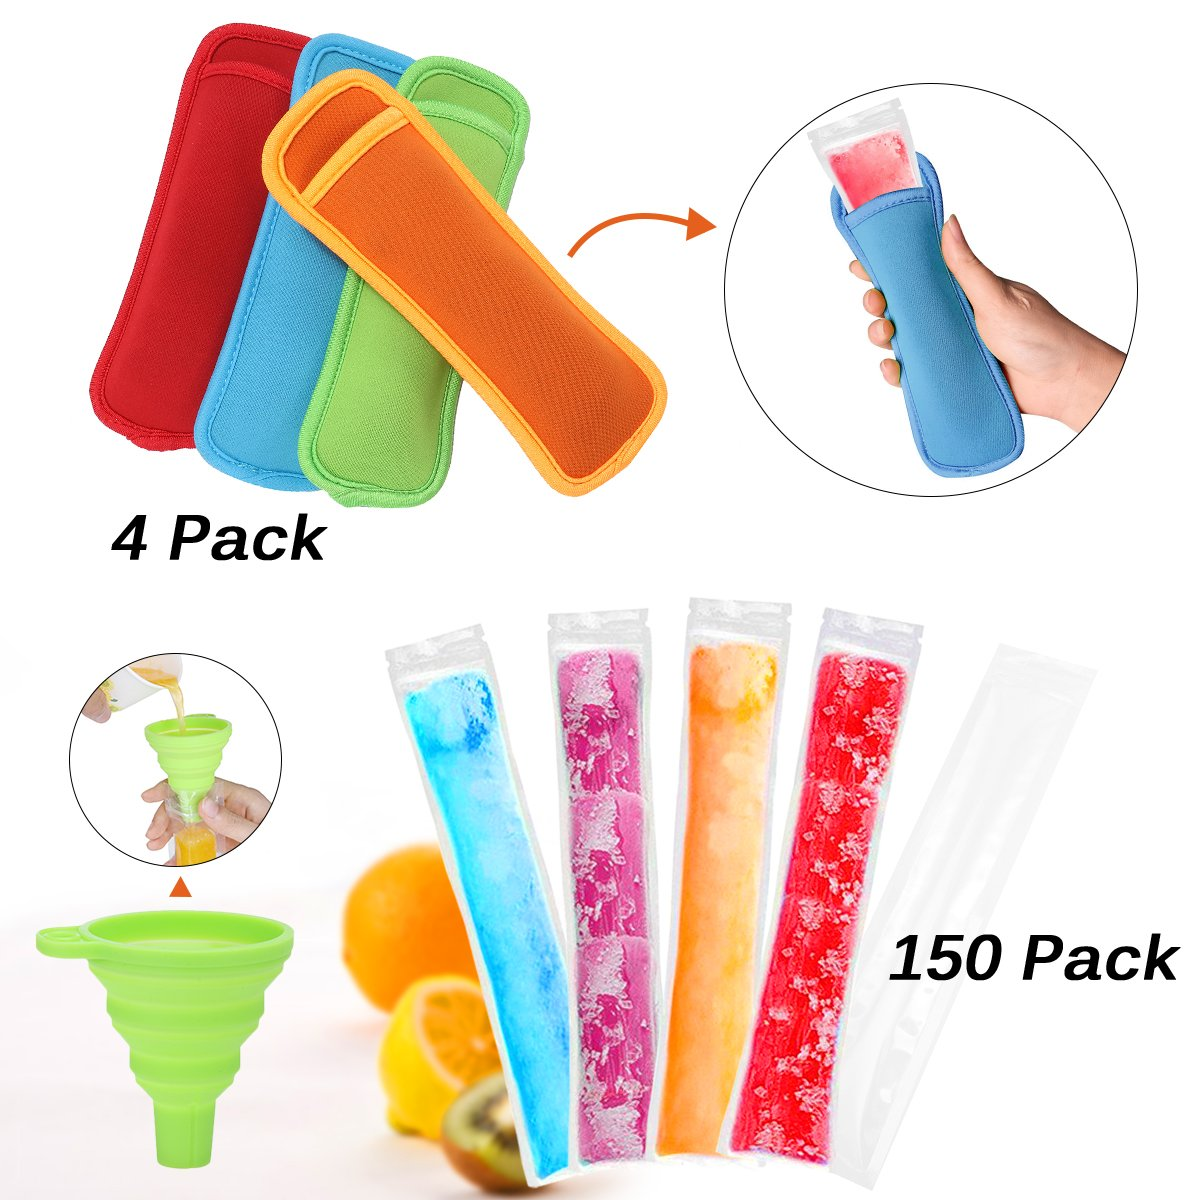 Janolia Ice Popsicle Mold Bags, 150 Pcs Ice Pop Bags with Popsicle Sleeves, BPA Free Freezer Tubes With Zip Seals, Come with a Funnel, for DIY Ice Pop, Healthy, Full Vitamin Snacks